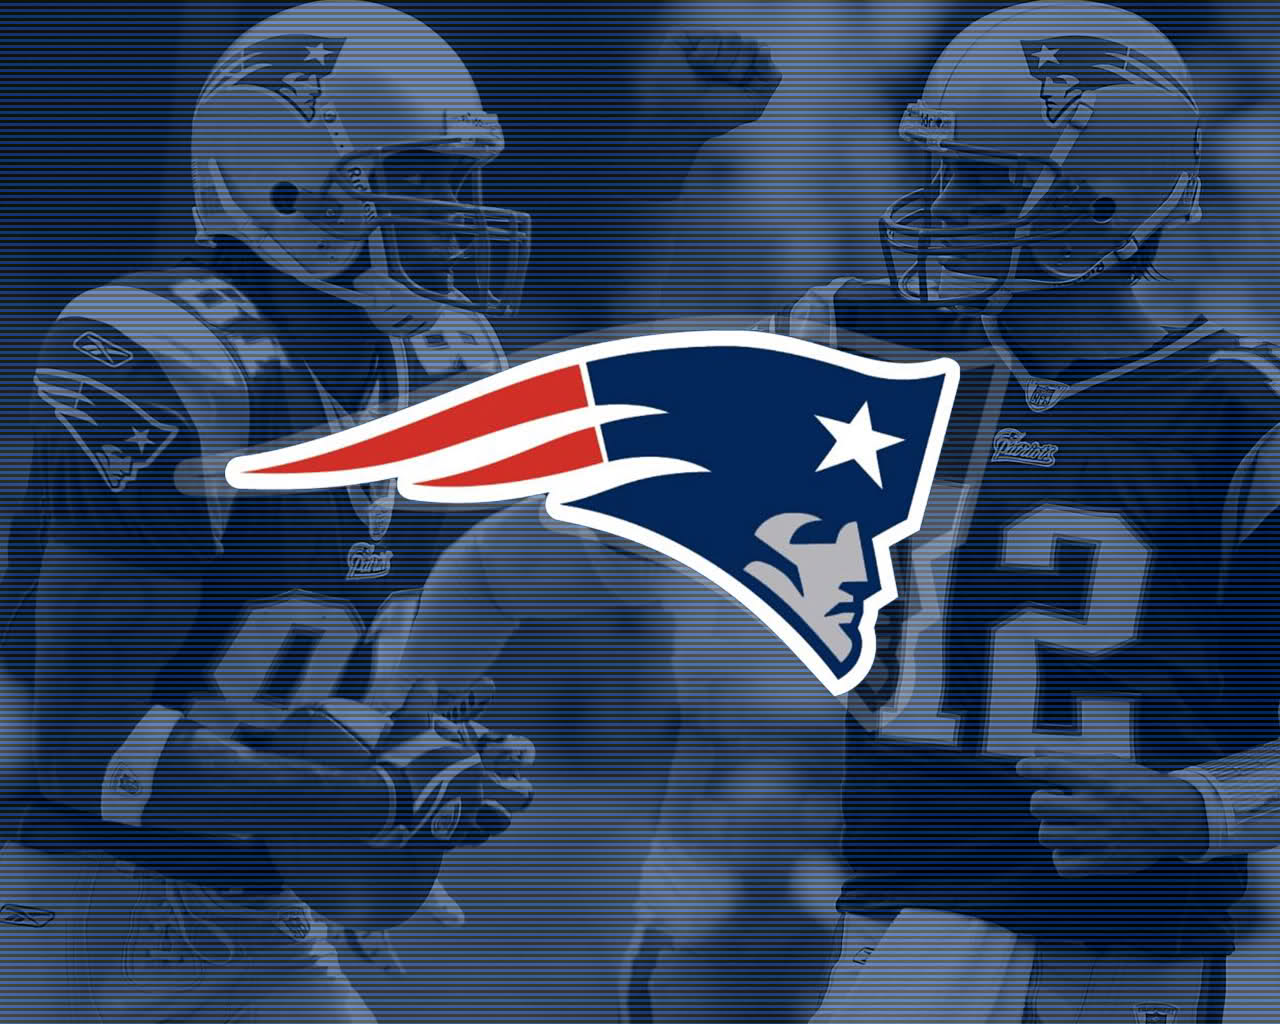 New England Patriots HD background | New England Patriots wallpapers